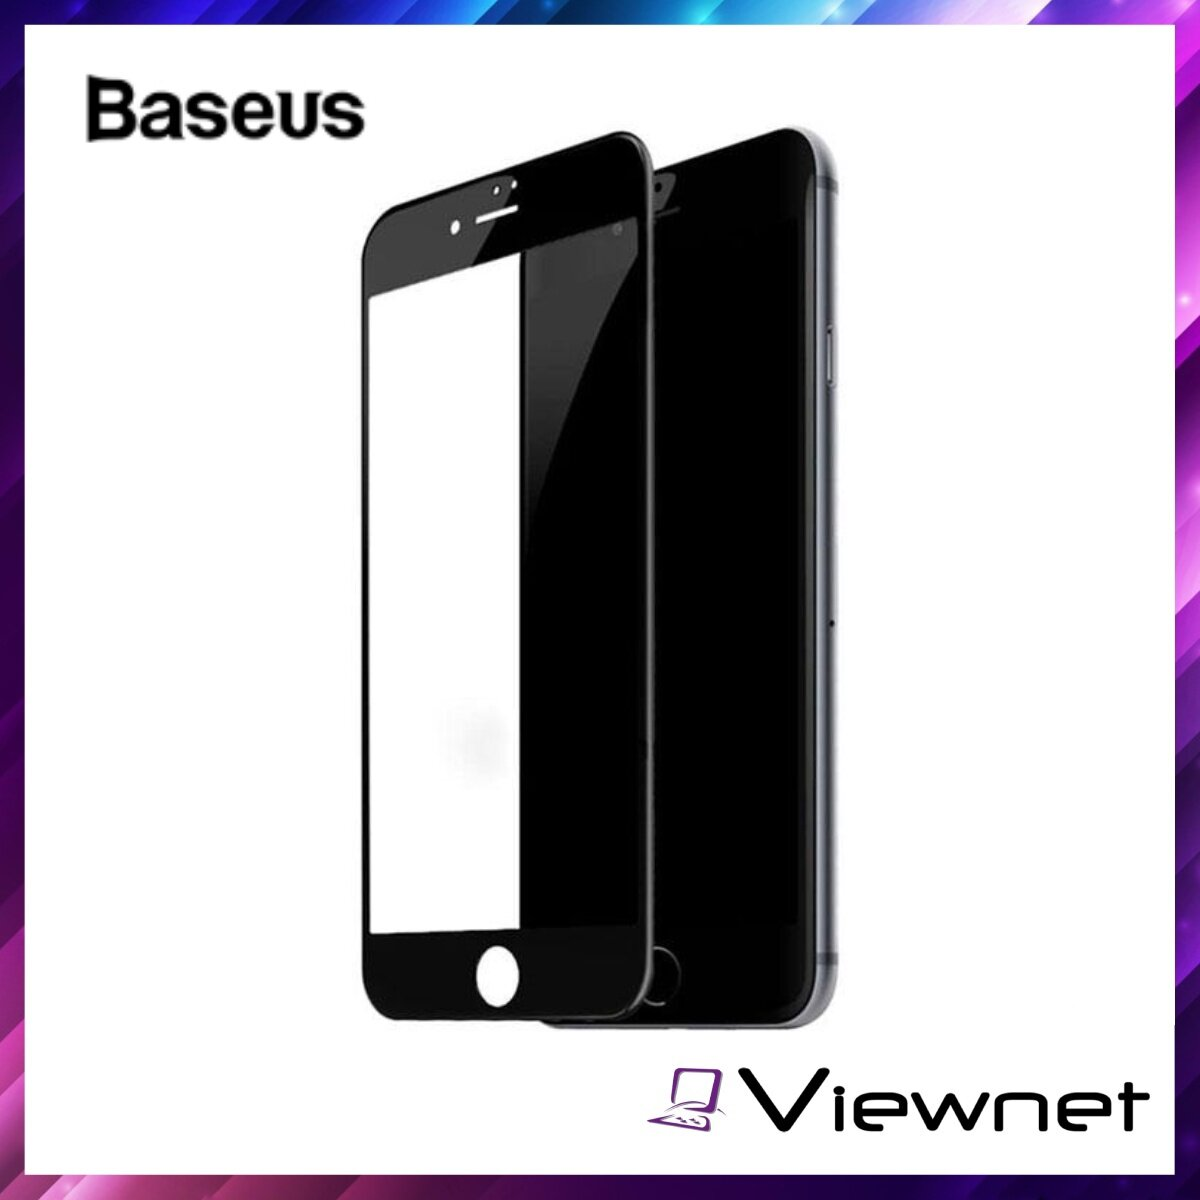 Baseus 0.3mm All-screen Arc-surface Tempered Glass Film, For iPhone 7 Plus / 8 Plus, Full Edge Coverage, 9H Hardness, Ultra Thin Design, Anti-Shock, Black / White